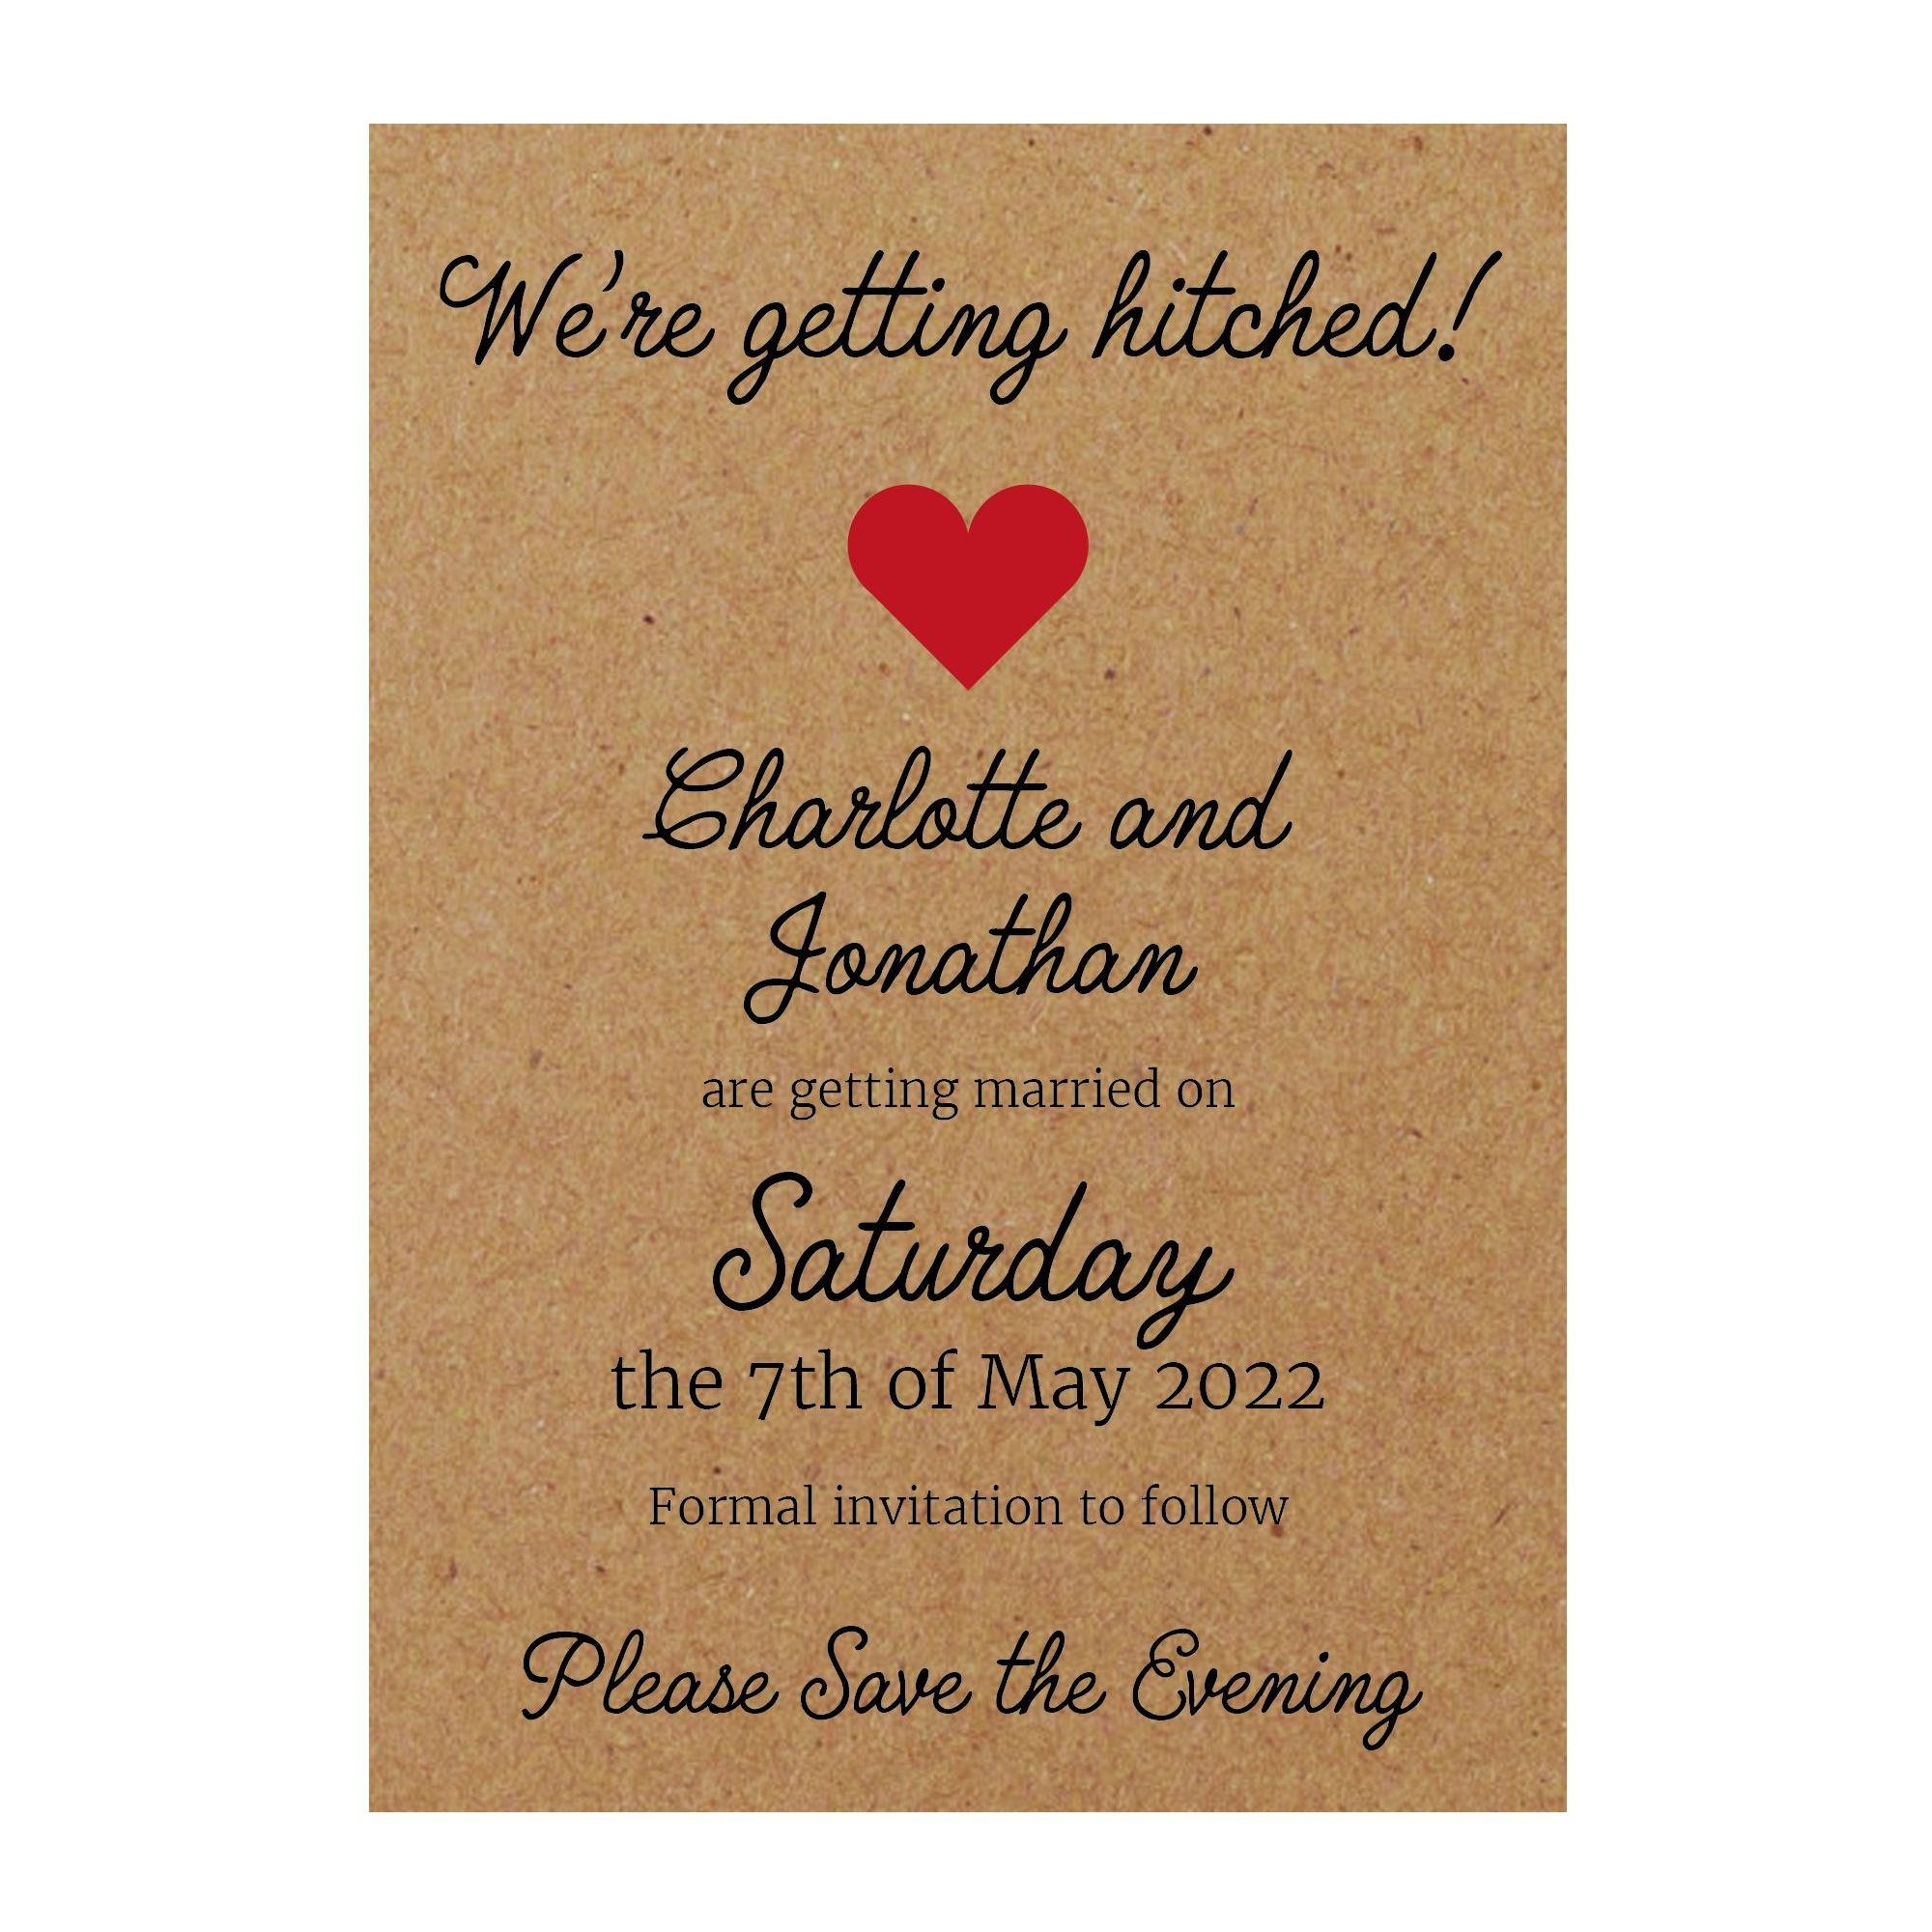 Recycled Brown Kraft We're Getting Hitched Save the Evening Cards